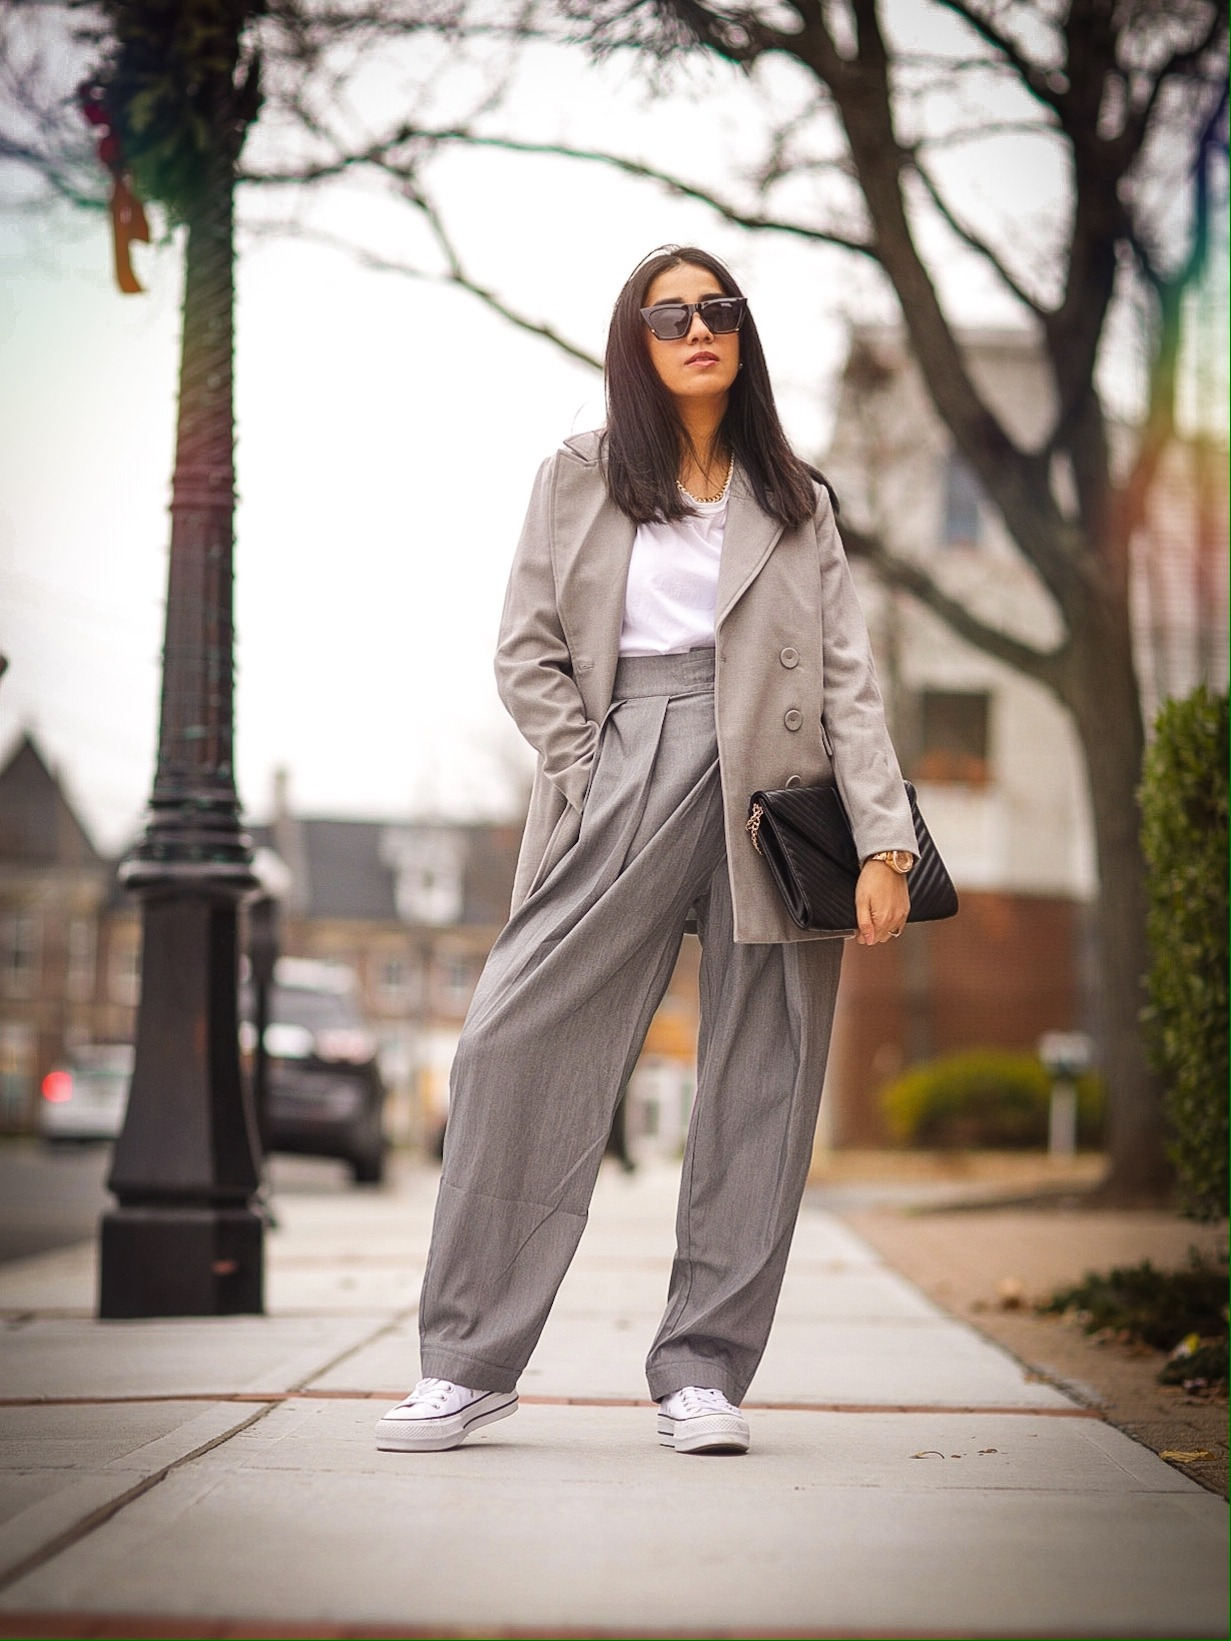 Oversized Looks That Are Here to Stay in 2021 Faiza Inam 5